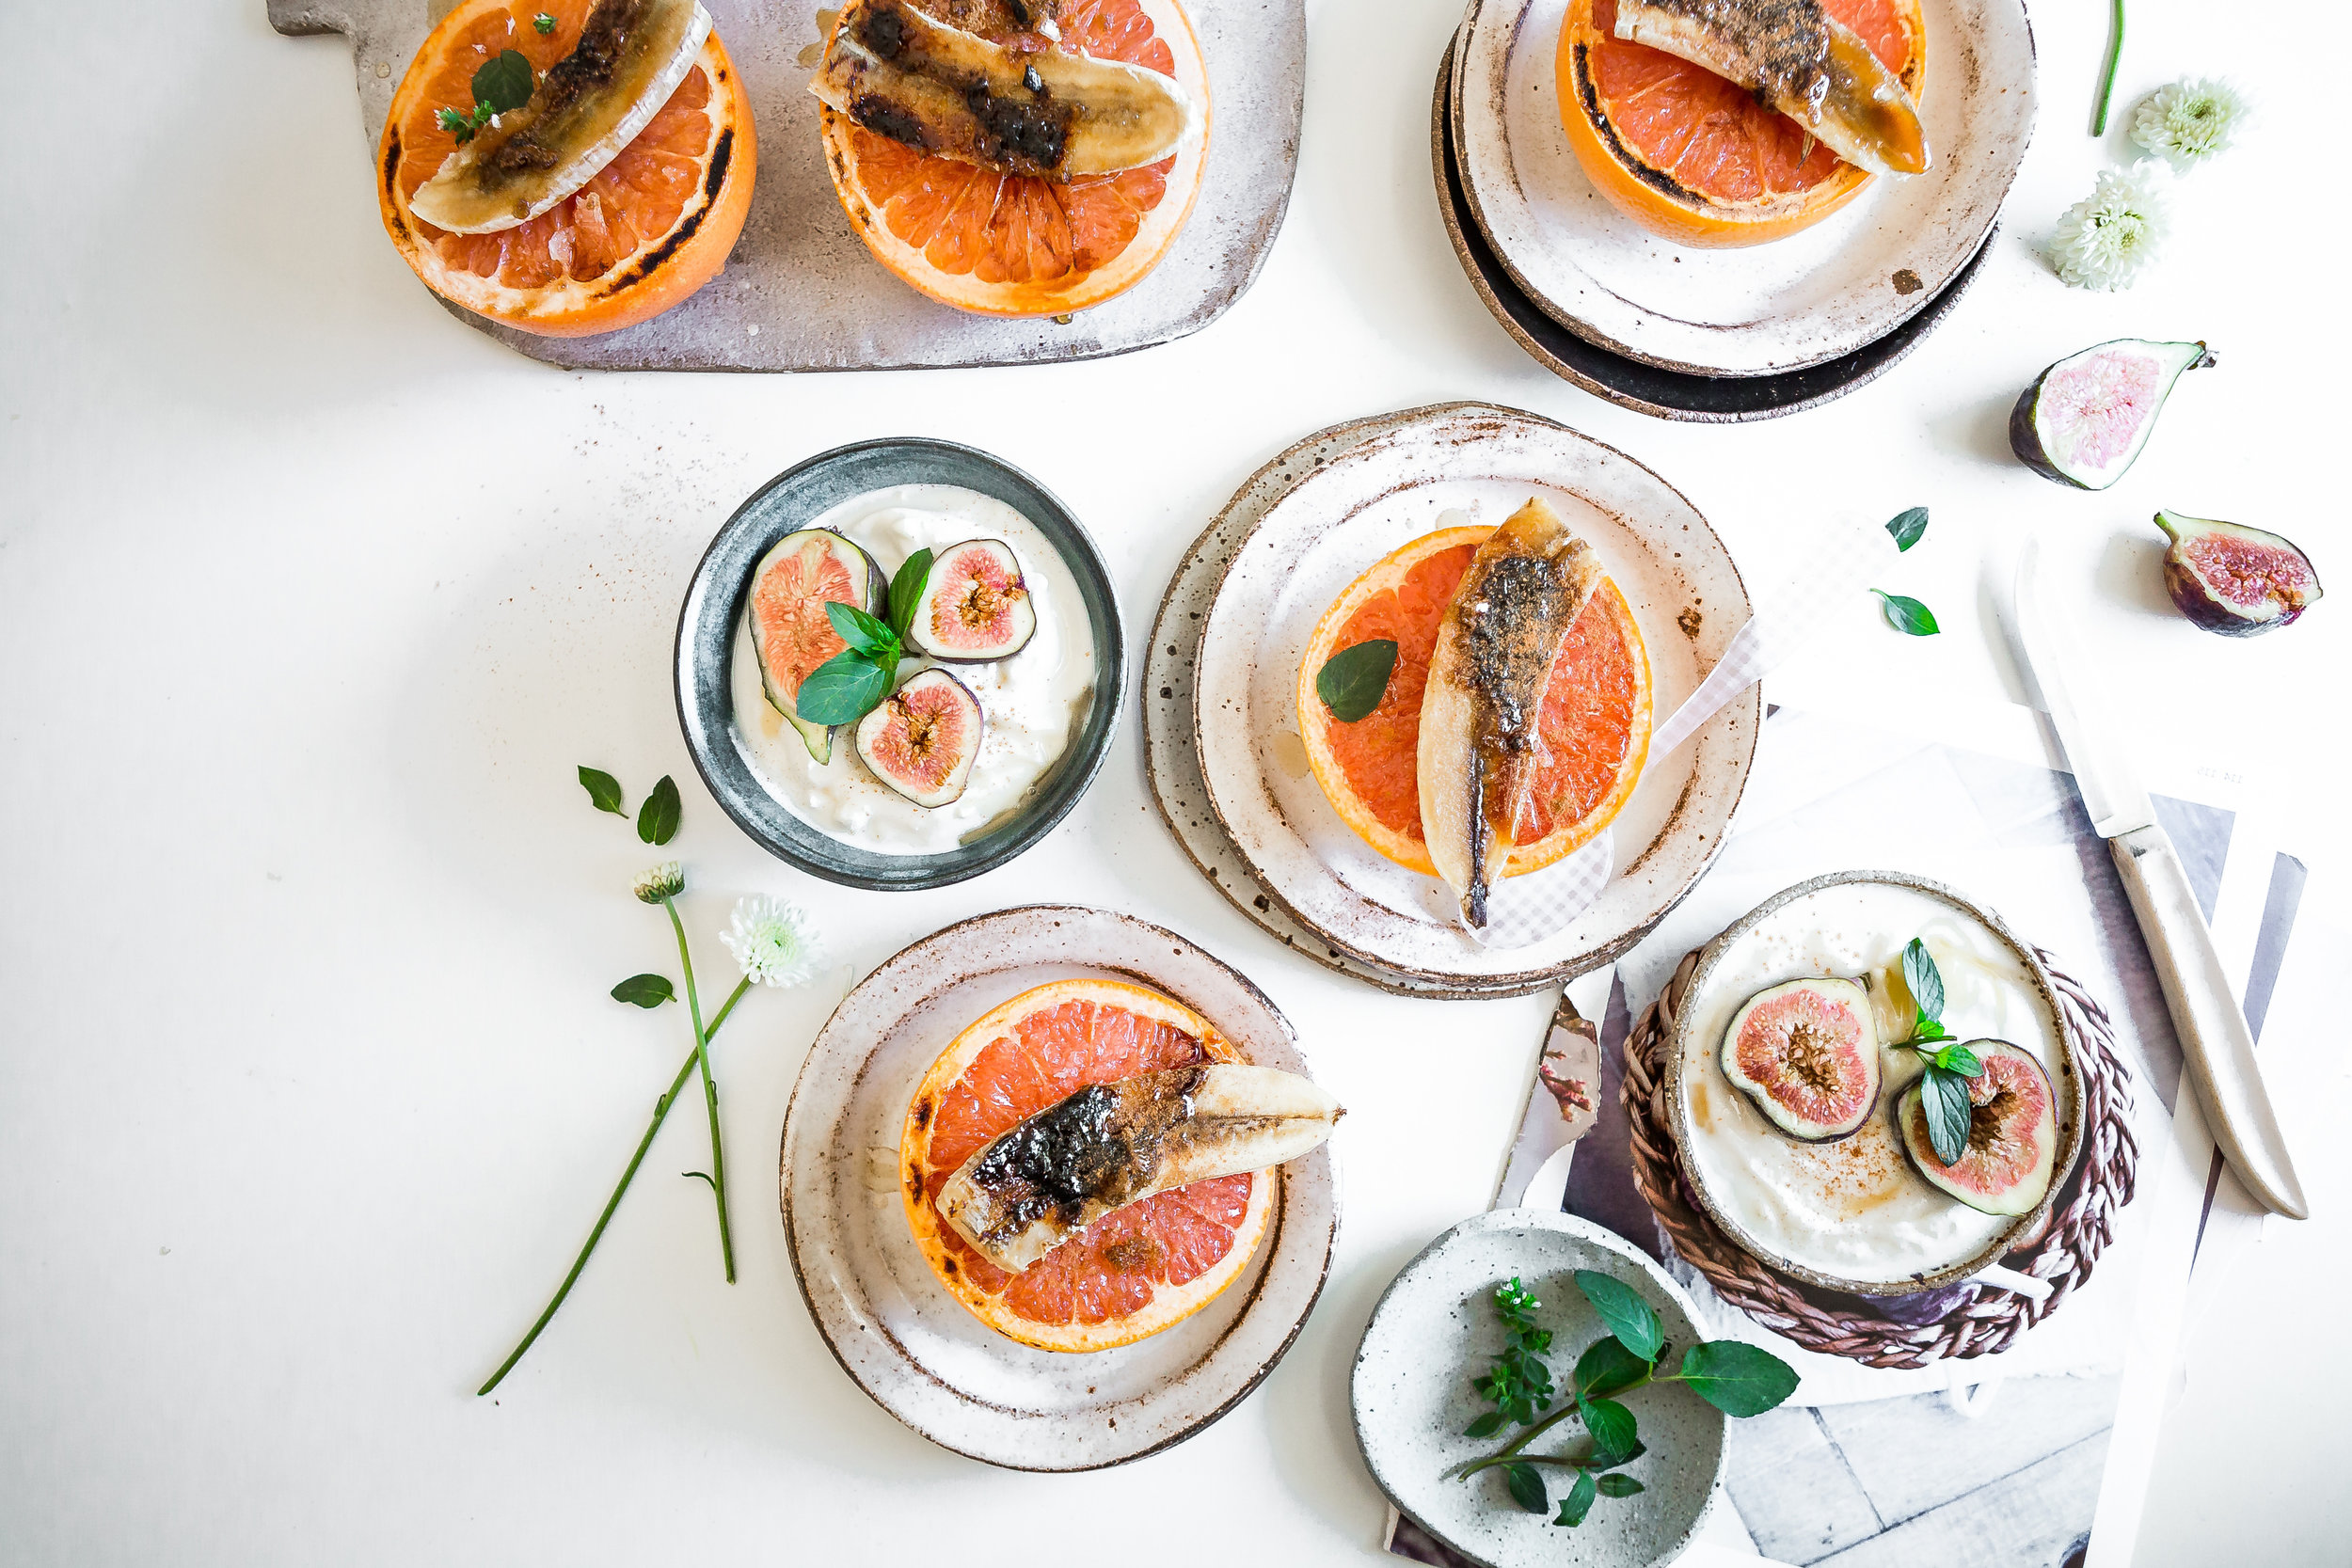 tHE BLOG - A recipe and wellness blog where Laura shares her delicious healthy recipes, tutorials, along with her expert wellness tips. Her simple recipes are easy to follow and quick to prepare. The recipes are nutrient-dense and designed to fuel your body for optimal wellness.